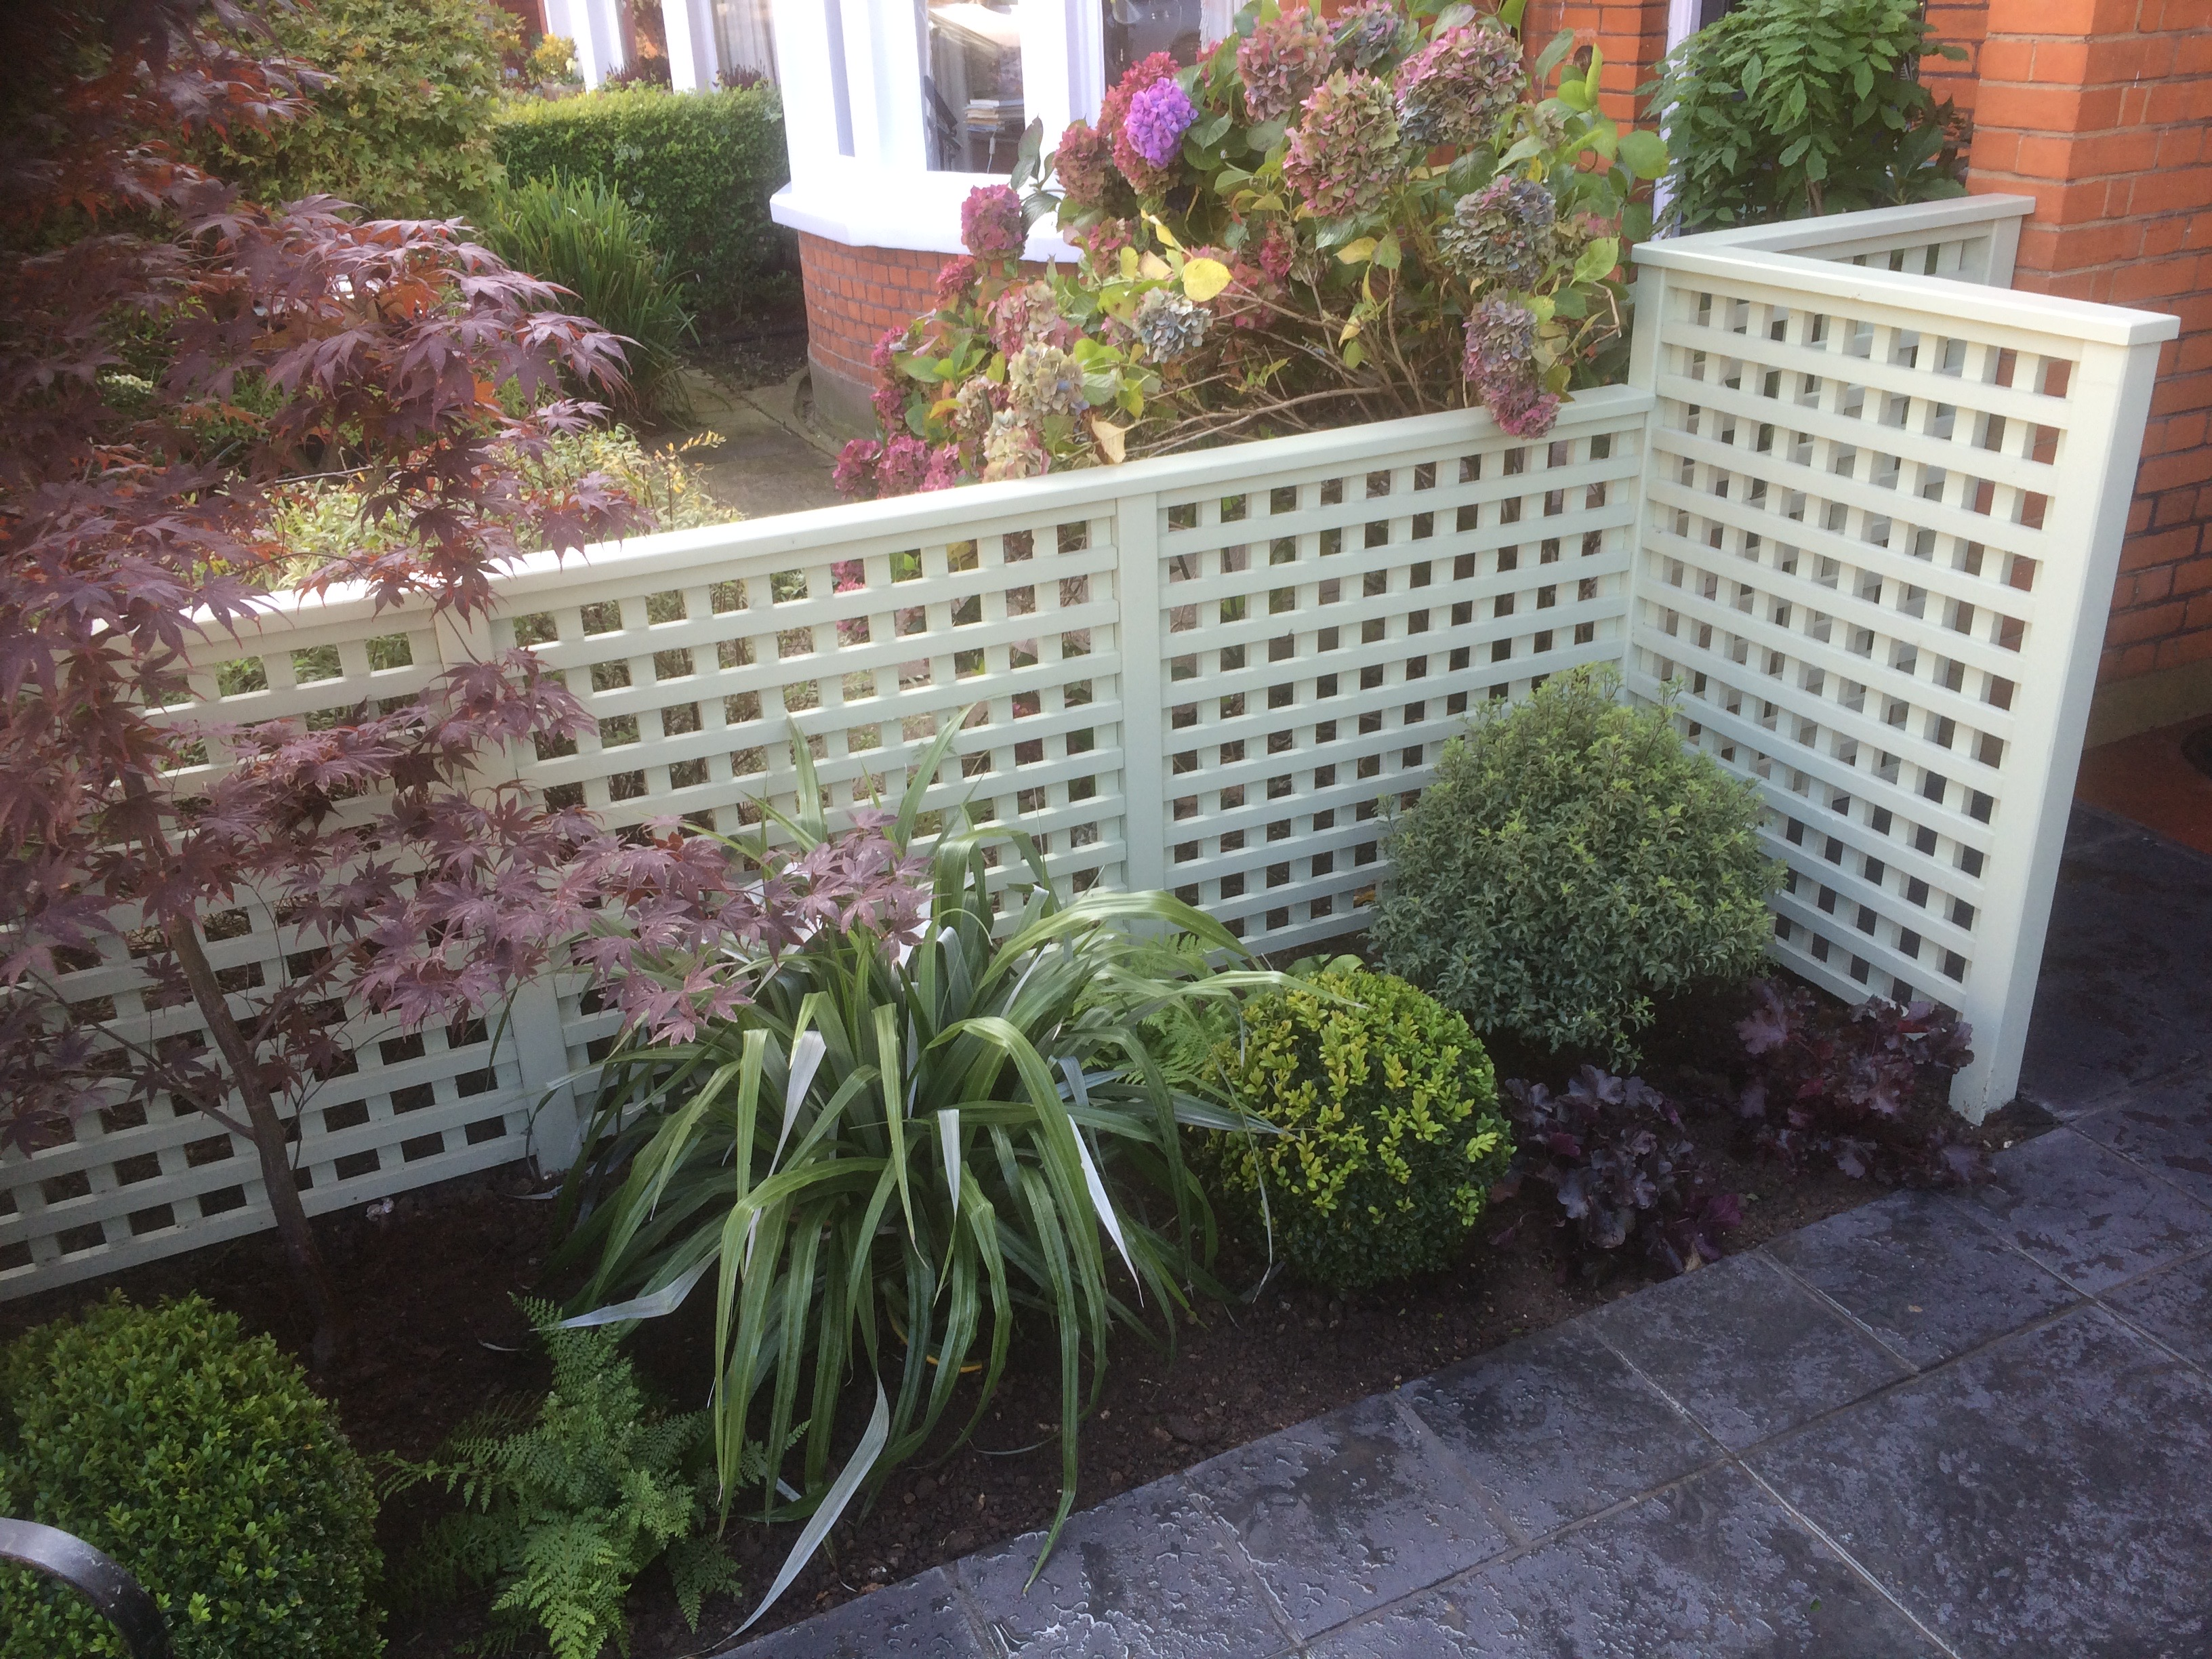 Small hole trellis Fences in London